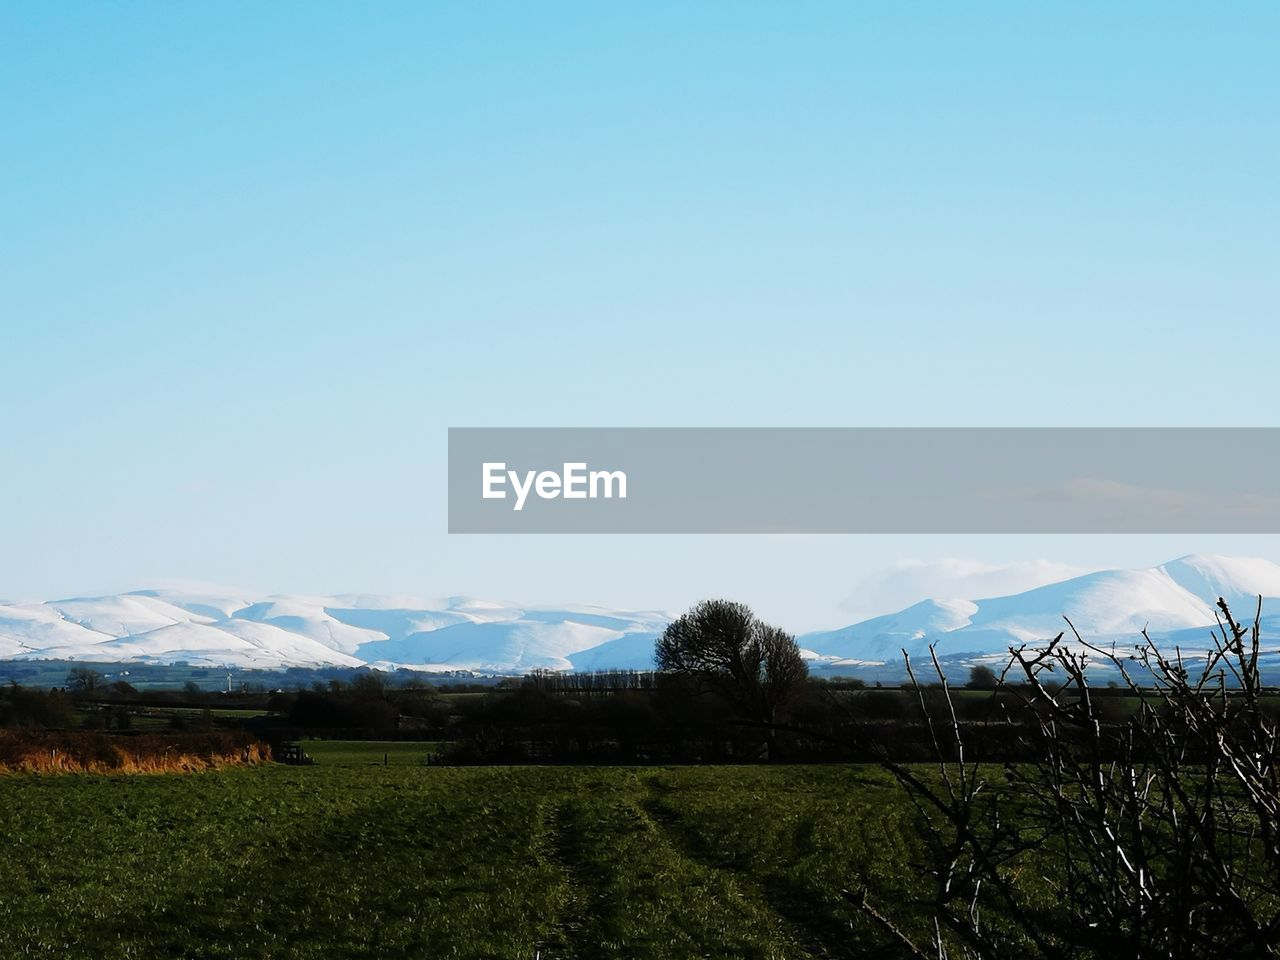 sky, landscape, mountain, scenics - nature, environment, beauty in nature, tranquility, tranquil scene, copy space, plant, land, field, nature, no people, non-urban scene, blue, day, mountain range, growth, idyllic, snowcapped mountain